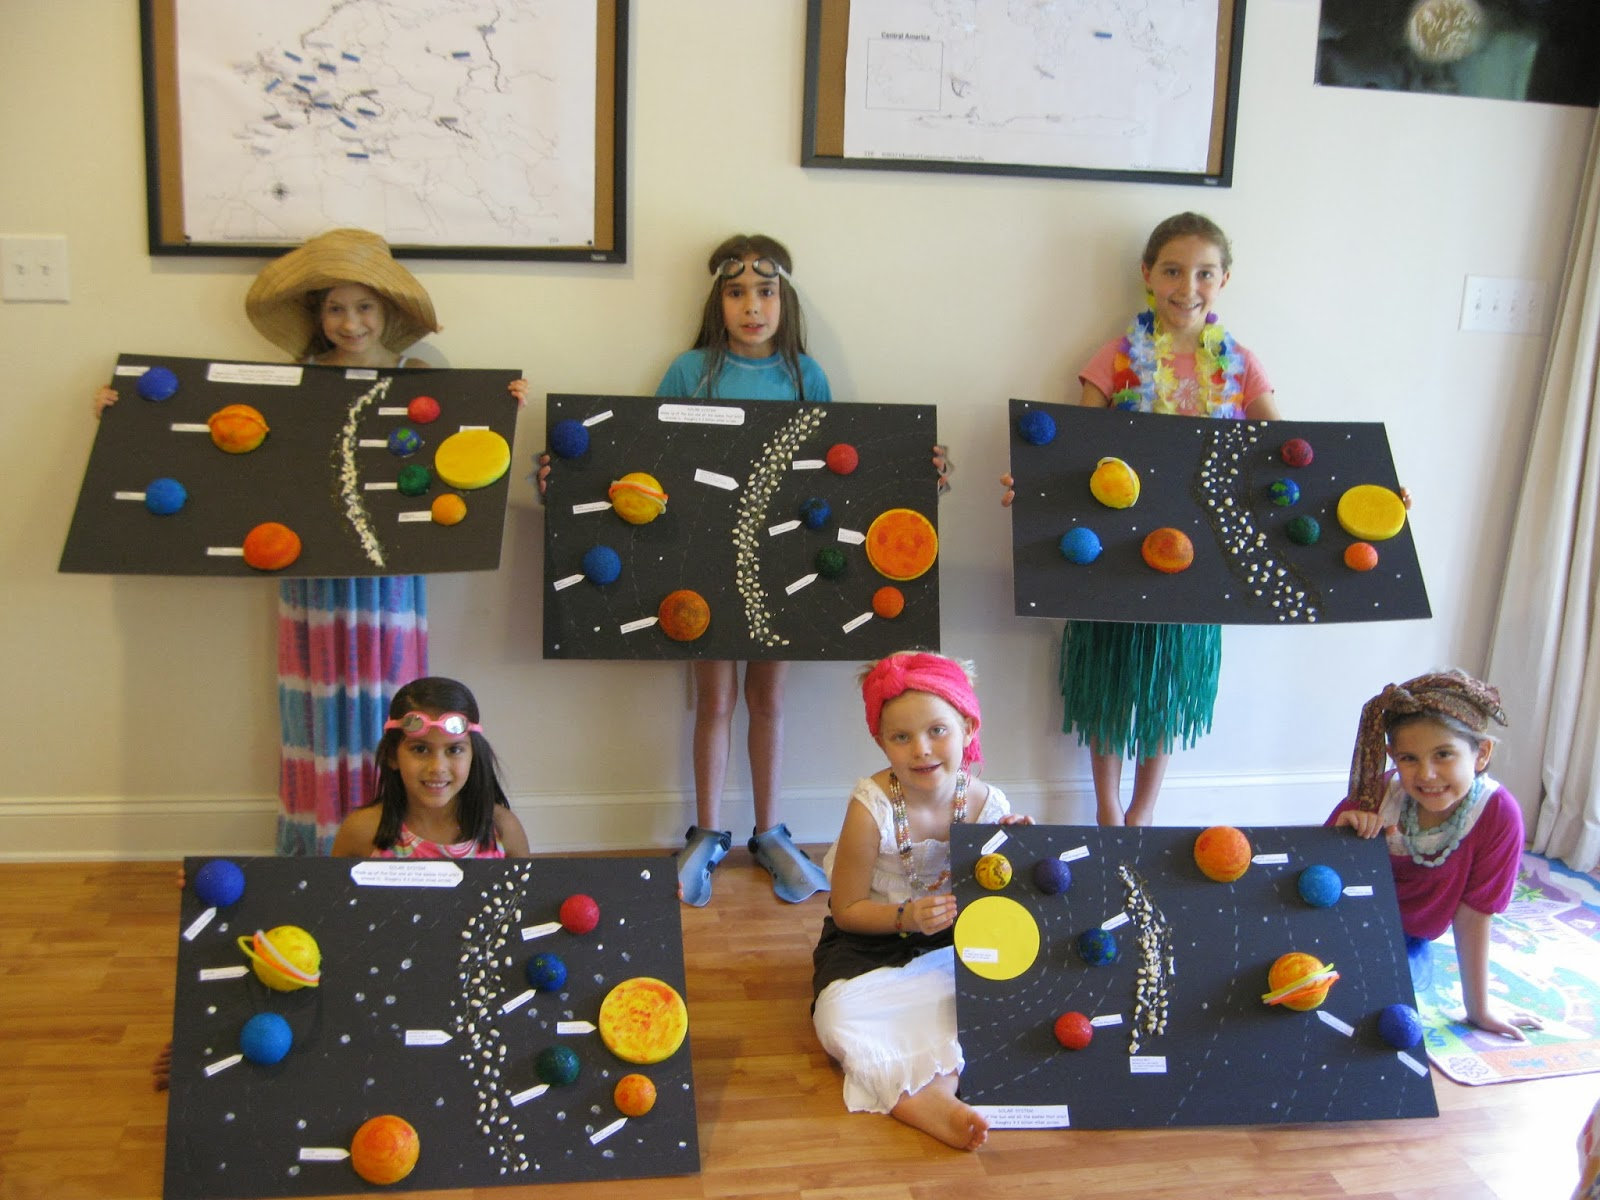 solar system project ideas for 5th grade - photo #43